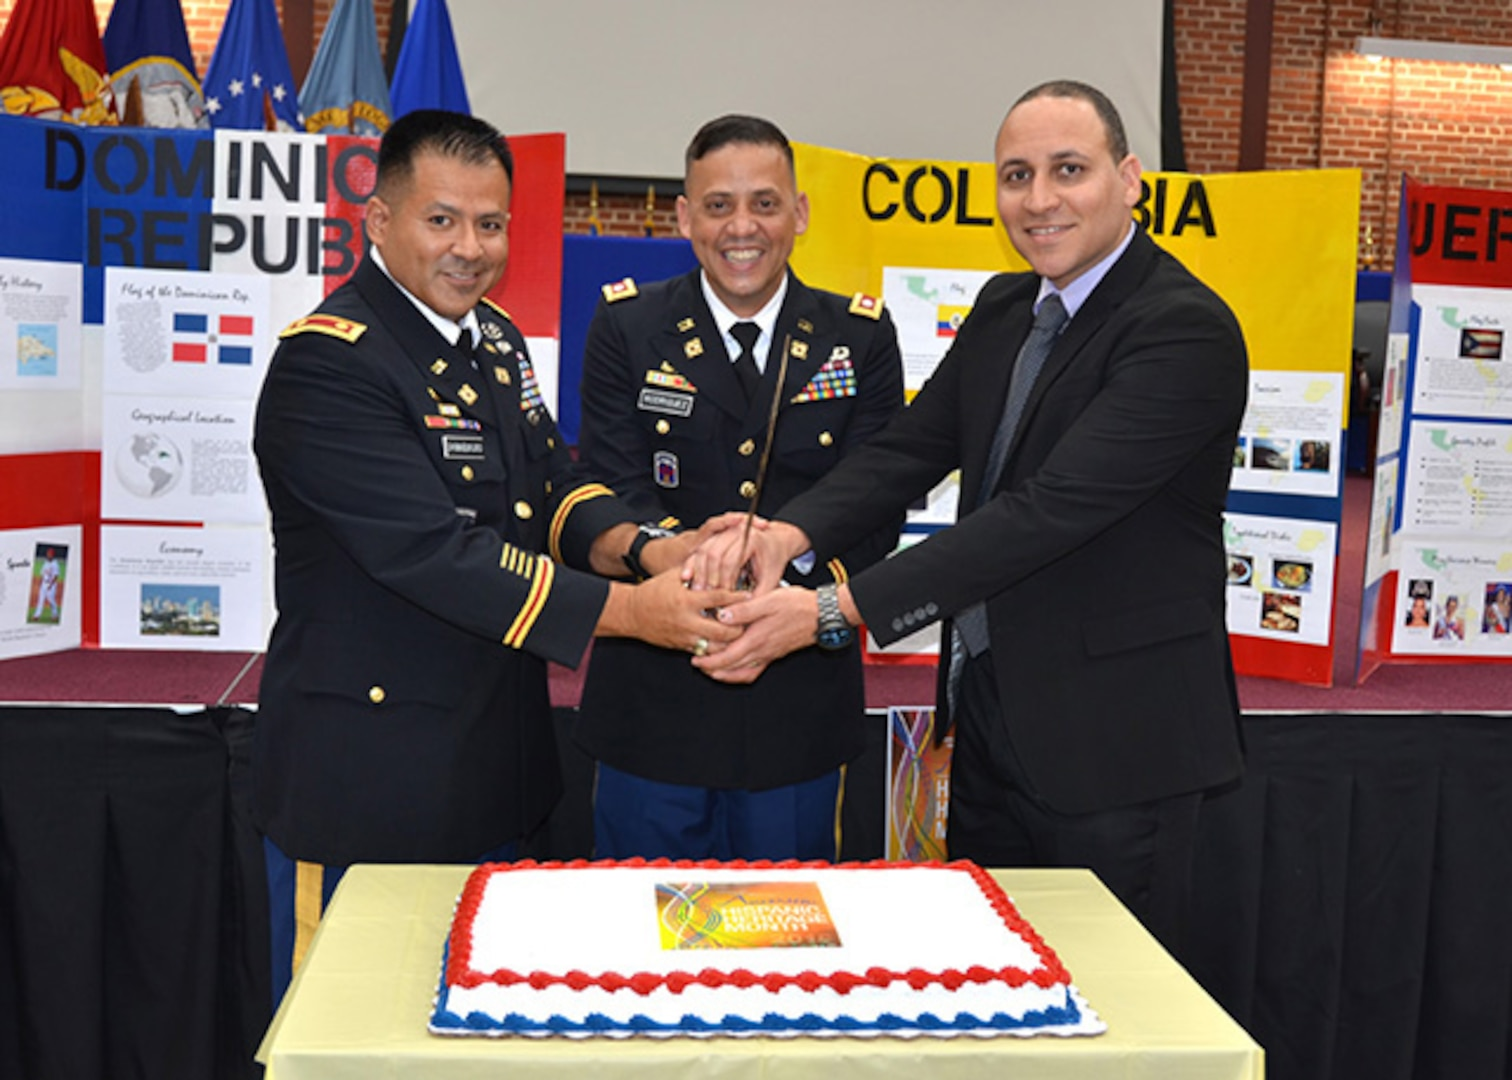 Defense Logistics Agency Aviation's Command Support Directorate and the Equal Employment Opportunity and Diversity Office held a kickoff ceremony for Hispanic Heritage Month on Sept. 16, 2016 in the Lotts Conference Center on Defense Supply Center Richmond, Virginia. Guest speaker Army Lt. Col. Luis Rodriguez, center, Exercise Support Division chief, Logistics Exercise and Simulations Directorate, U.S. Army Training and Doctrine Command from Fort Lee, Virginia, along with DLA Aviation's Army Maj. Alex Shimabukuro, left, operations officer, Customer Operations Directorate and Maurice Sanabria, right, chief, Command Programs Office, Command Support Directorate, prepare to cut the cake.